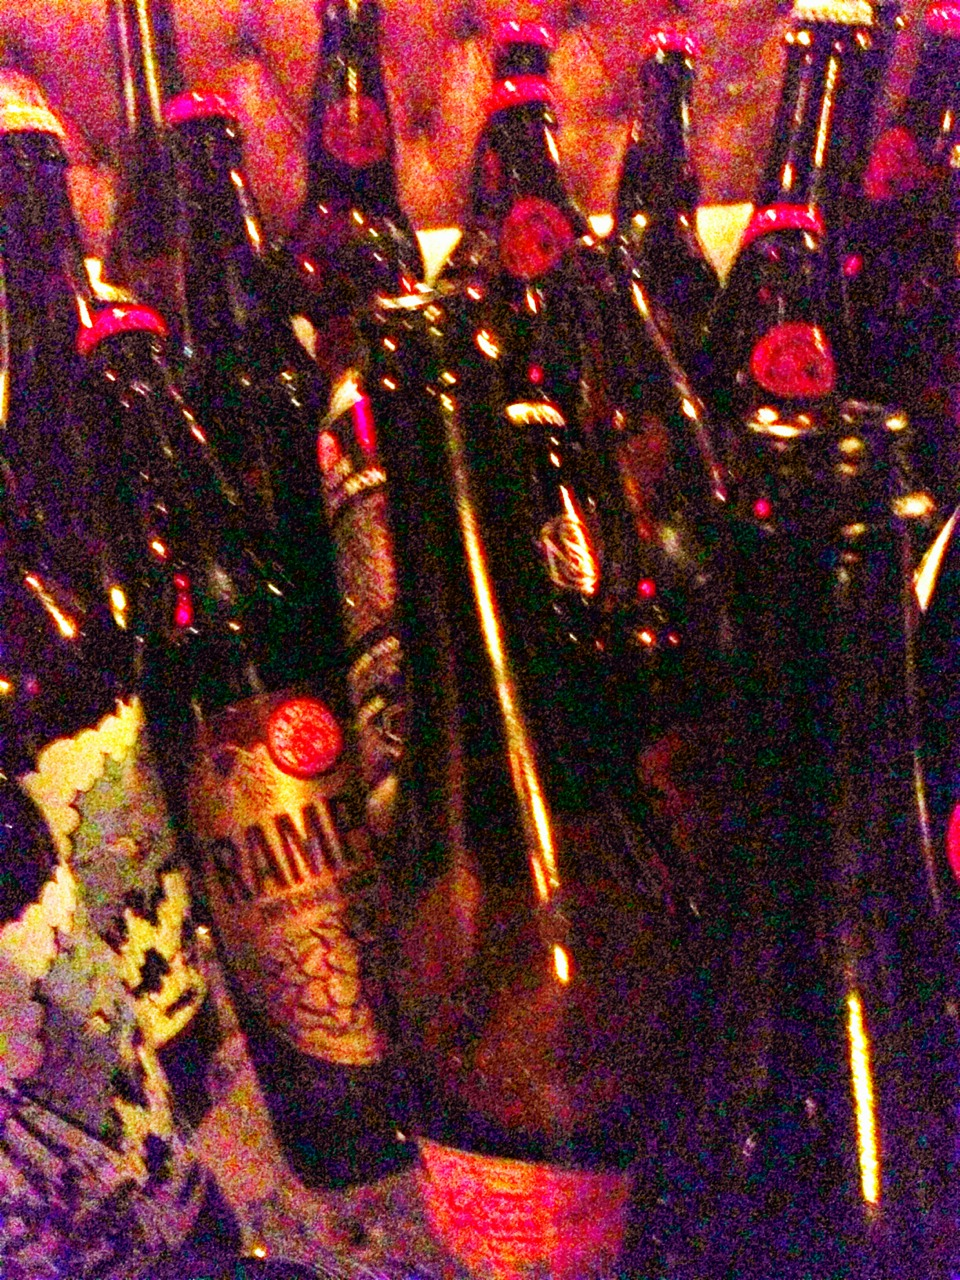 130328, attending private New Belgium brewery party last night <=> struggling to get moving this morning.